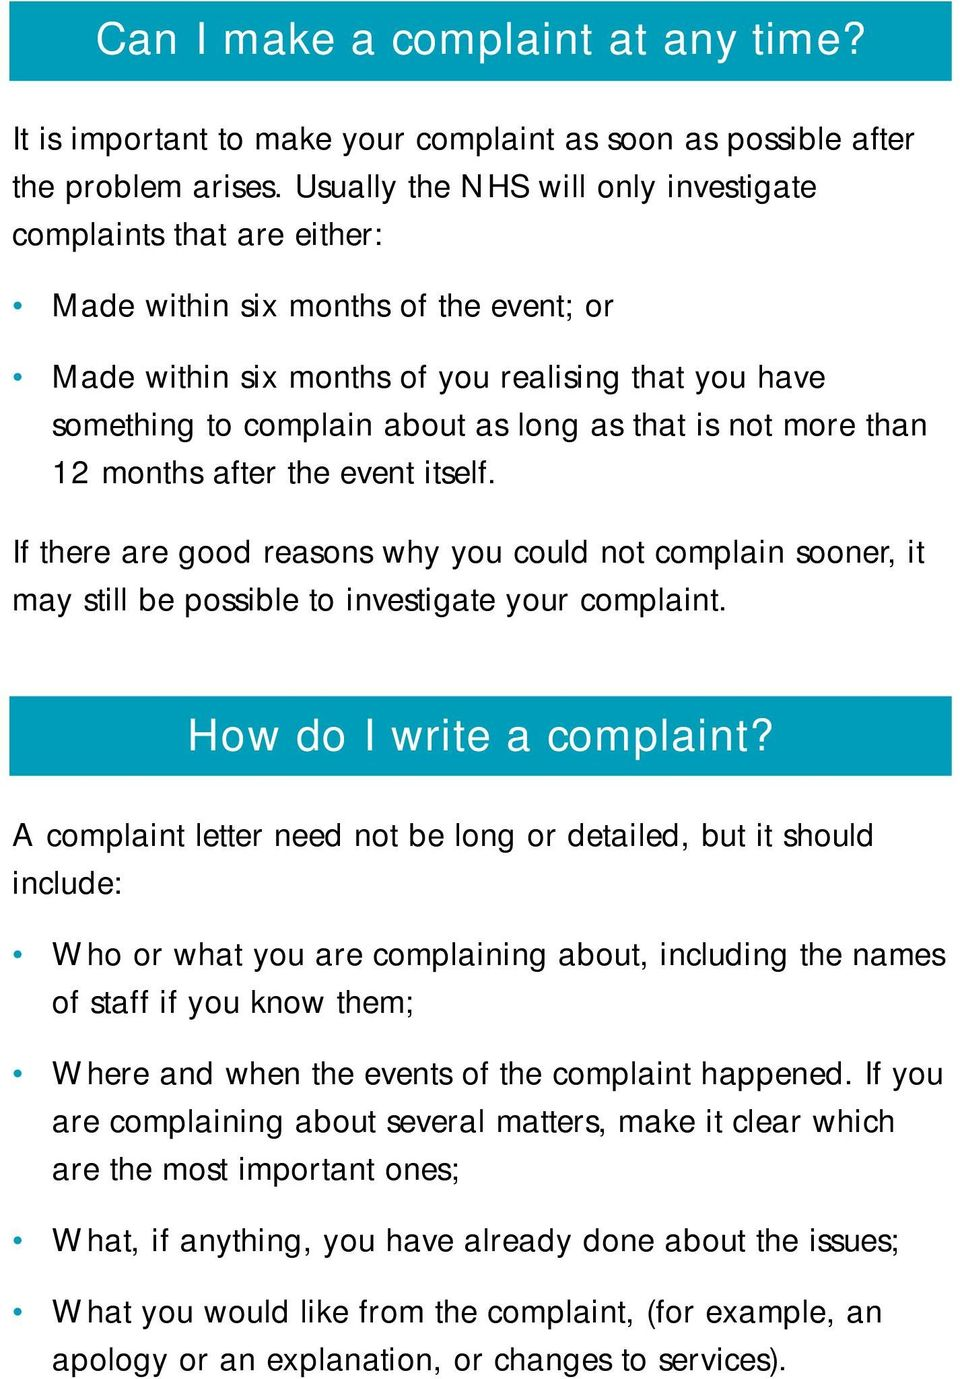 that is not more than 12 months after the event itself. If there are good reasons why you could not complain sooner, it may still be possible to investigate your complaint. How do I write a complaint?